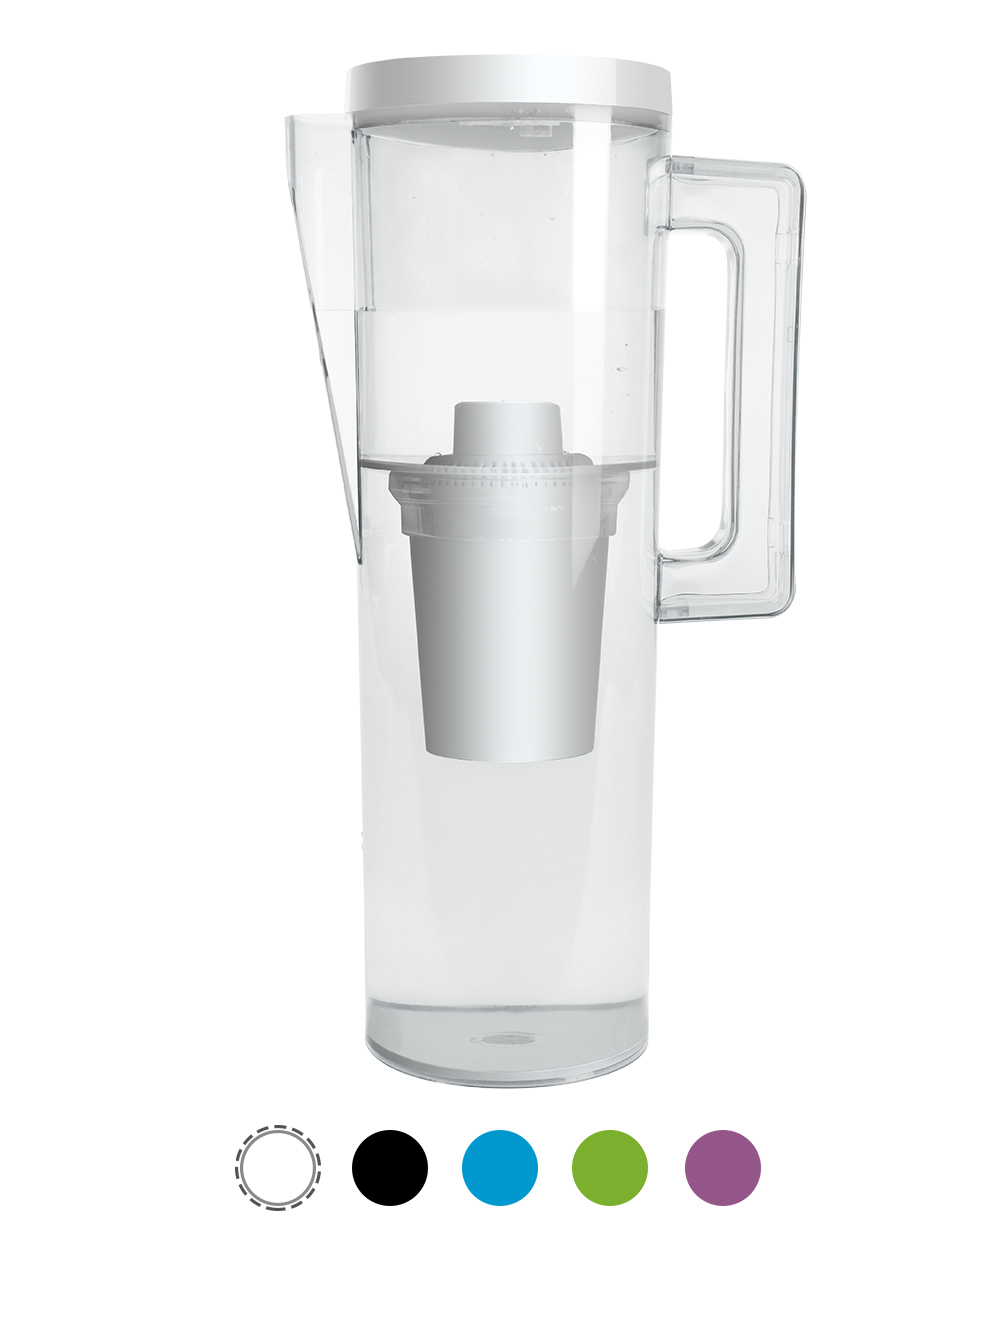 aok-106-water-filter-jug-4.jpg